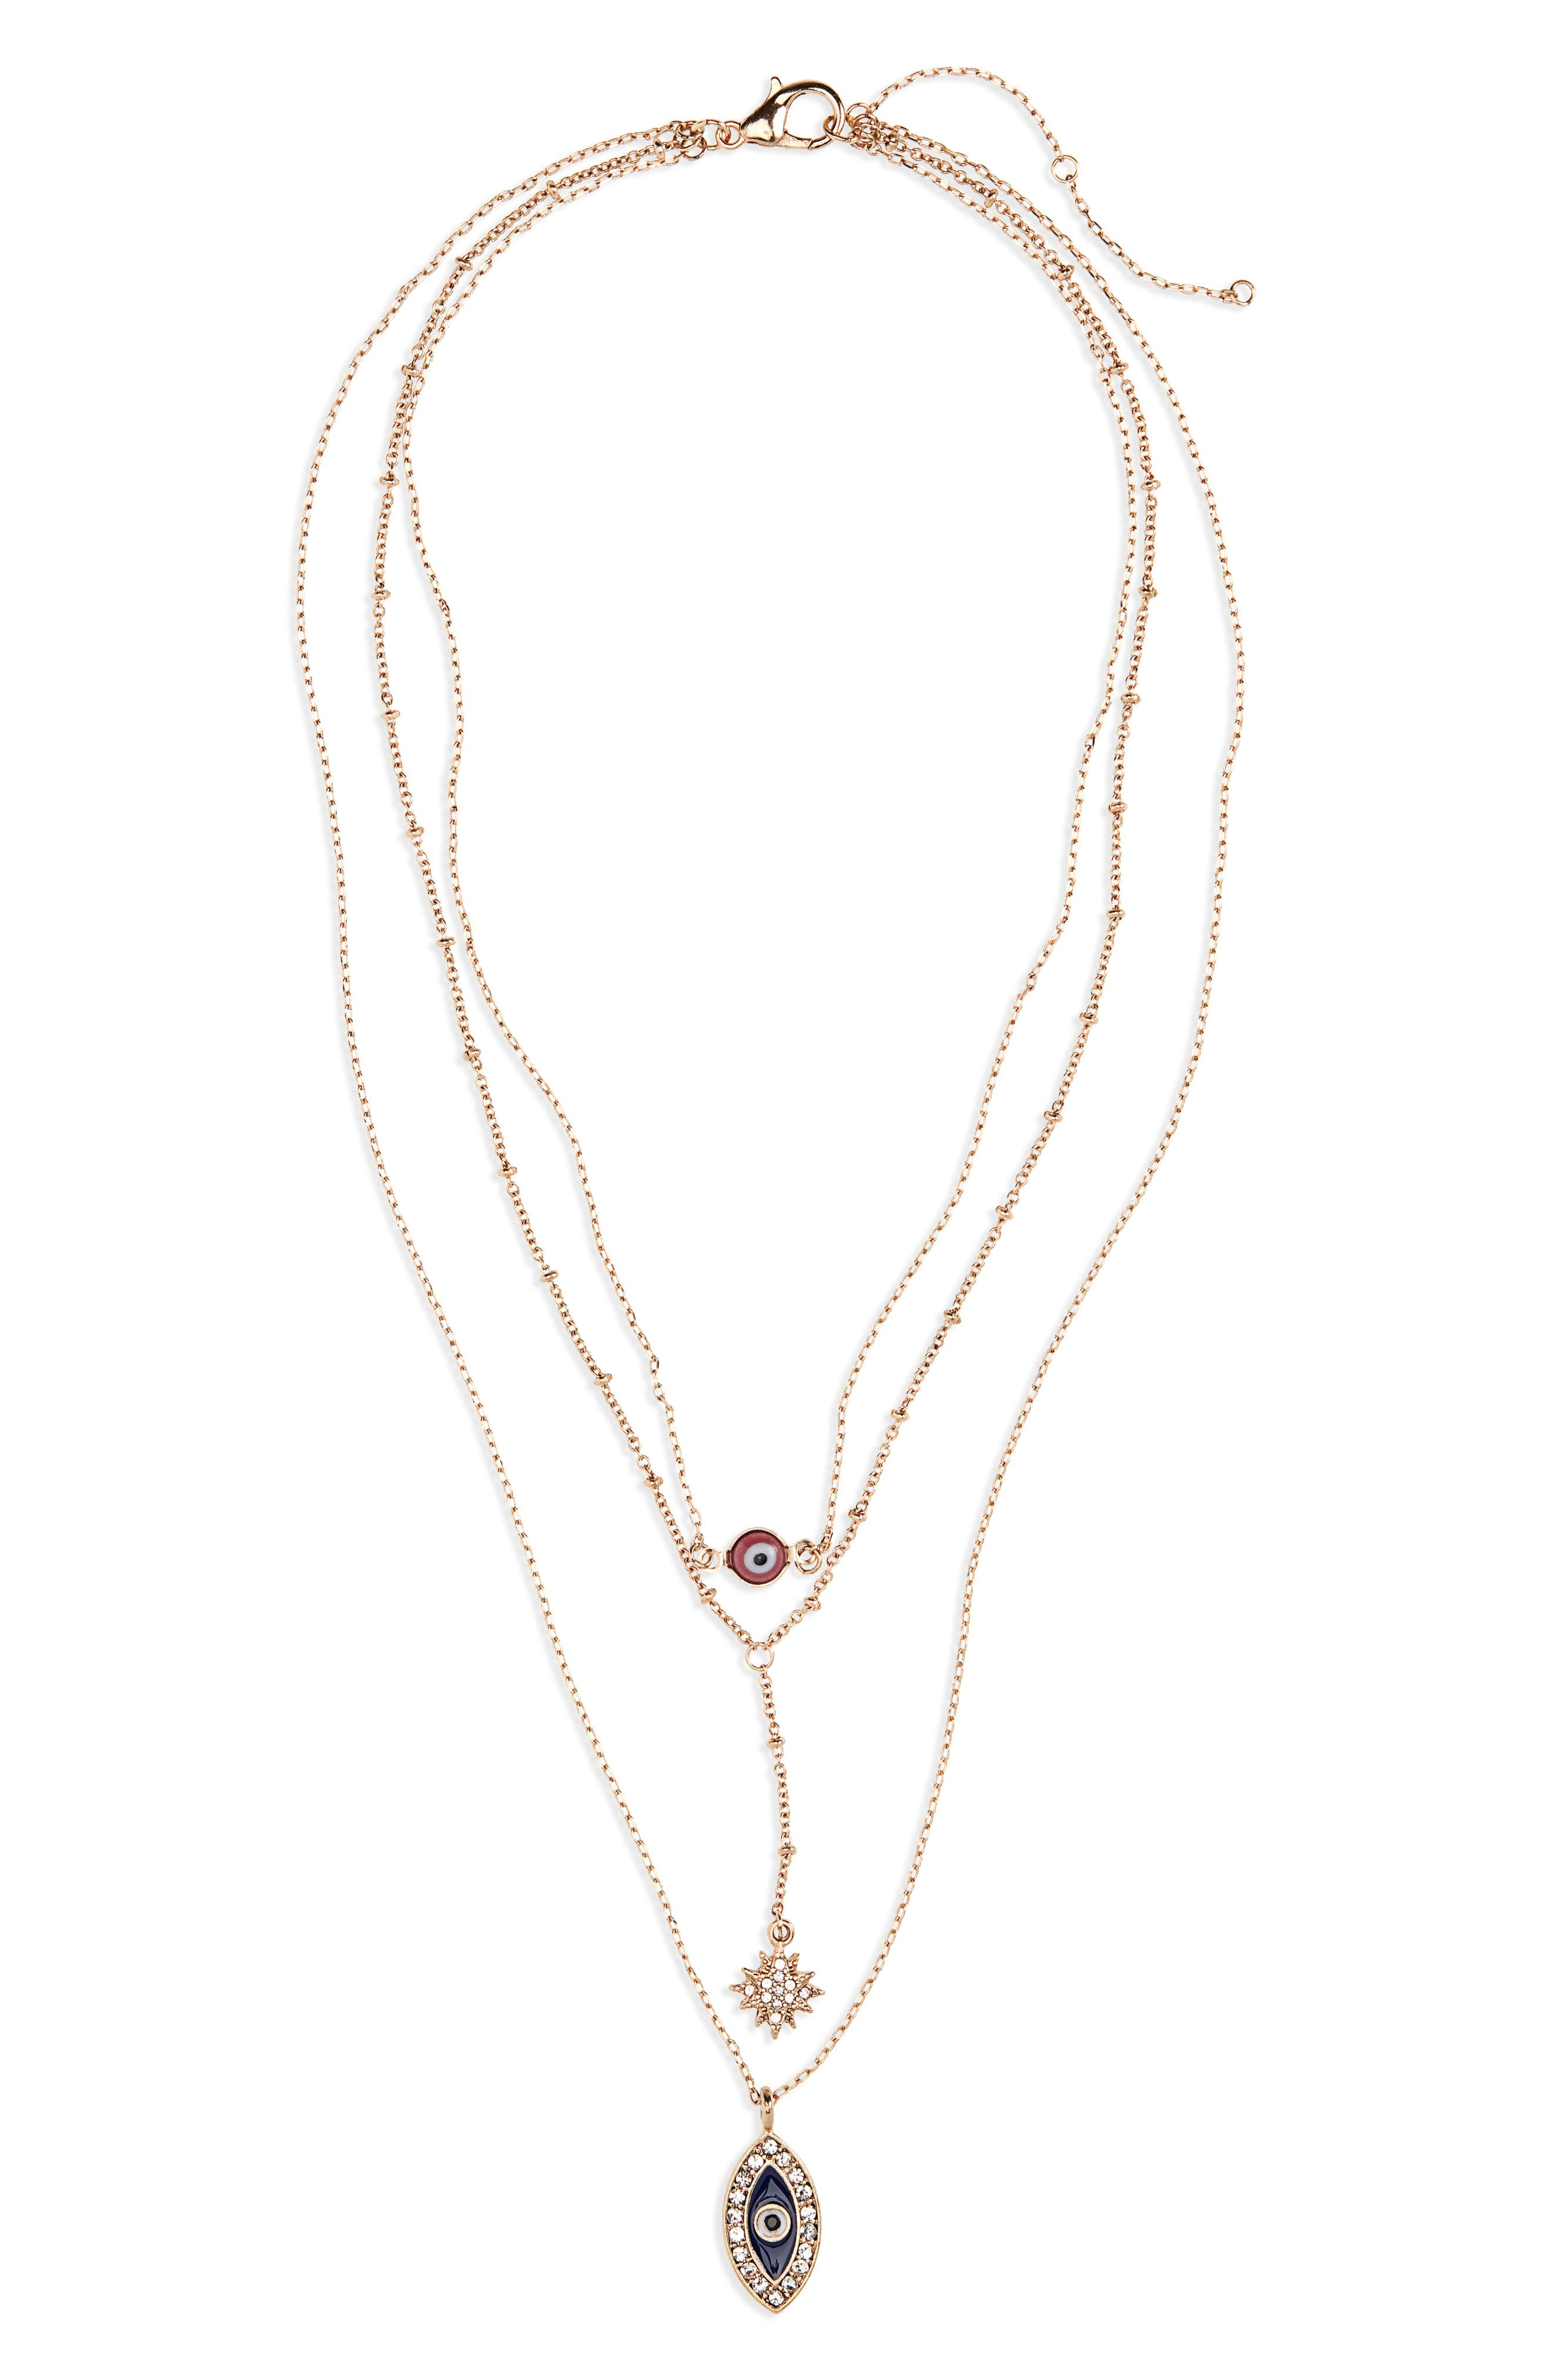 Layered Evil Eye Charm Necklace,                             Main thumbnail 1, color,                             710